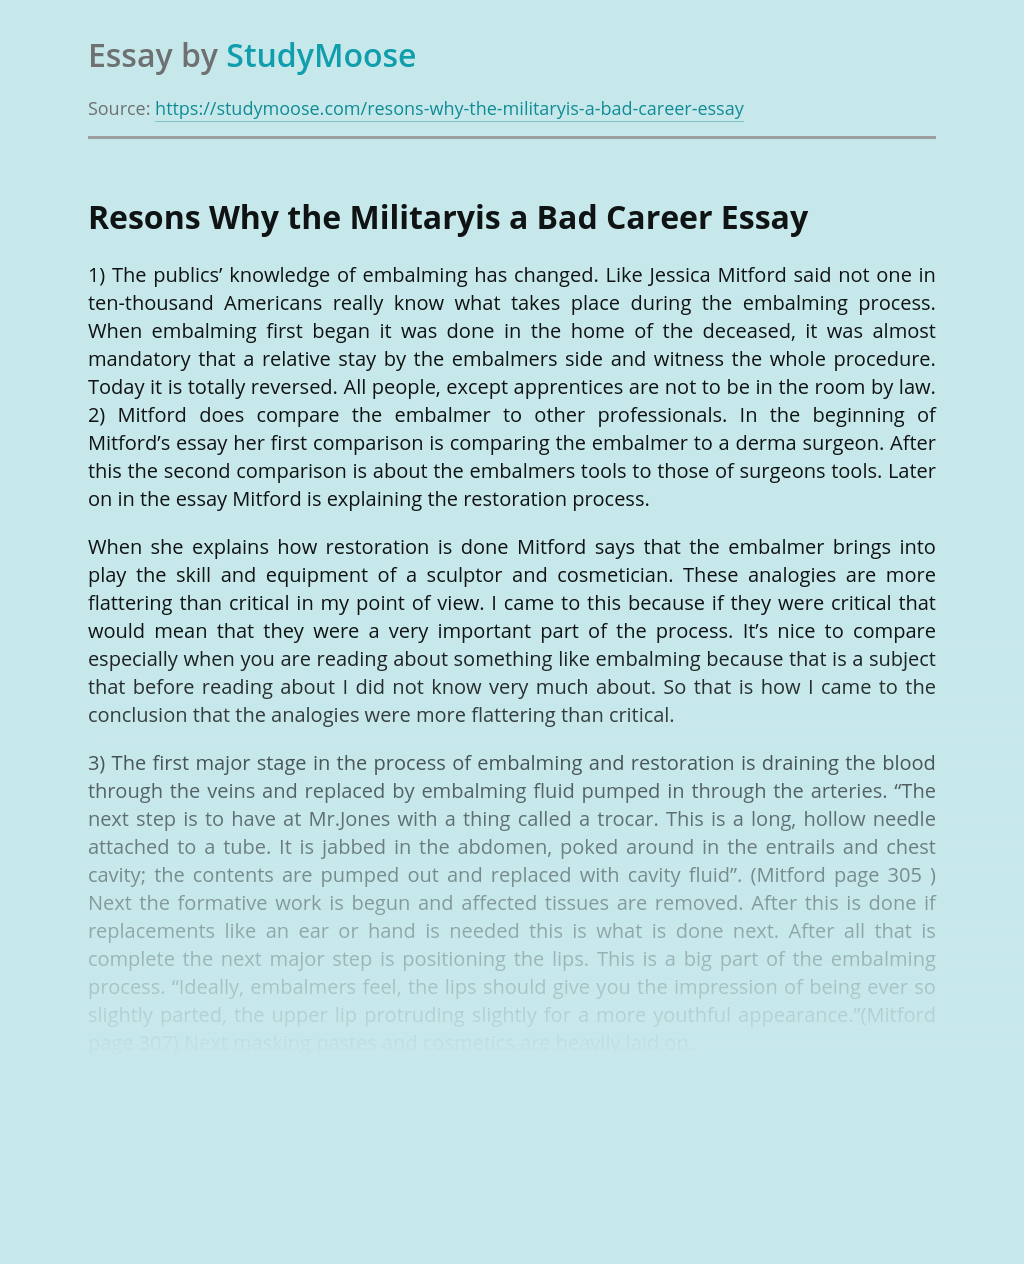 Resons Why the Militaryis a Bad Career